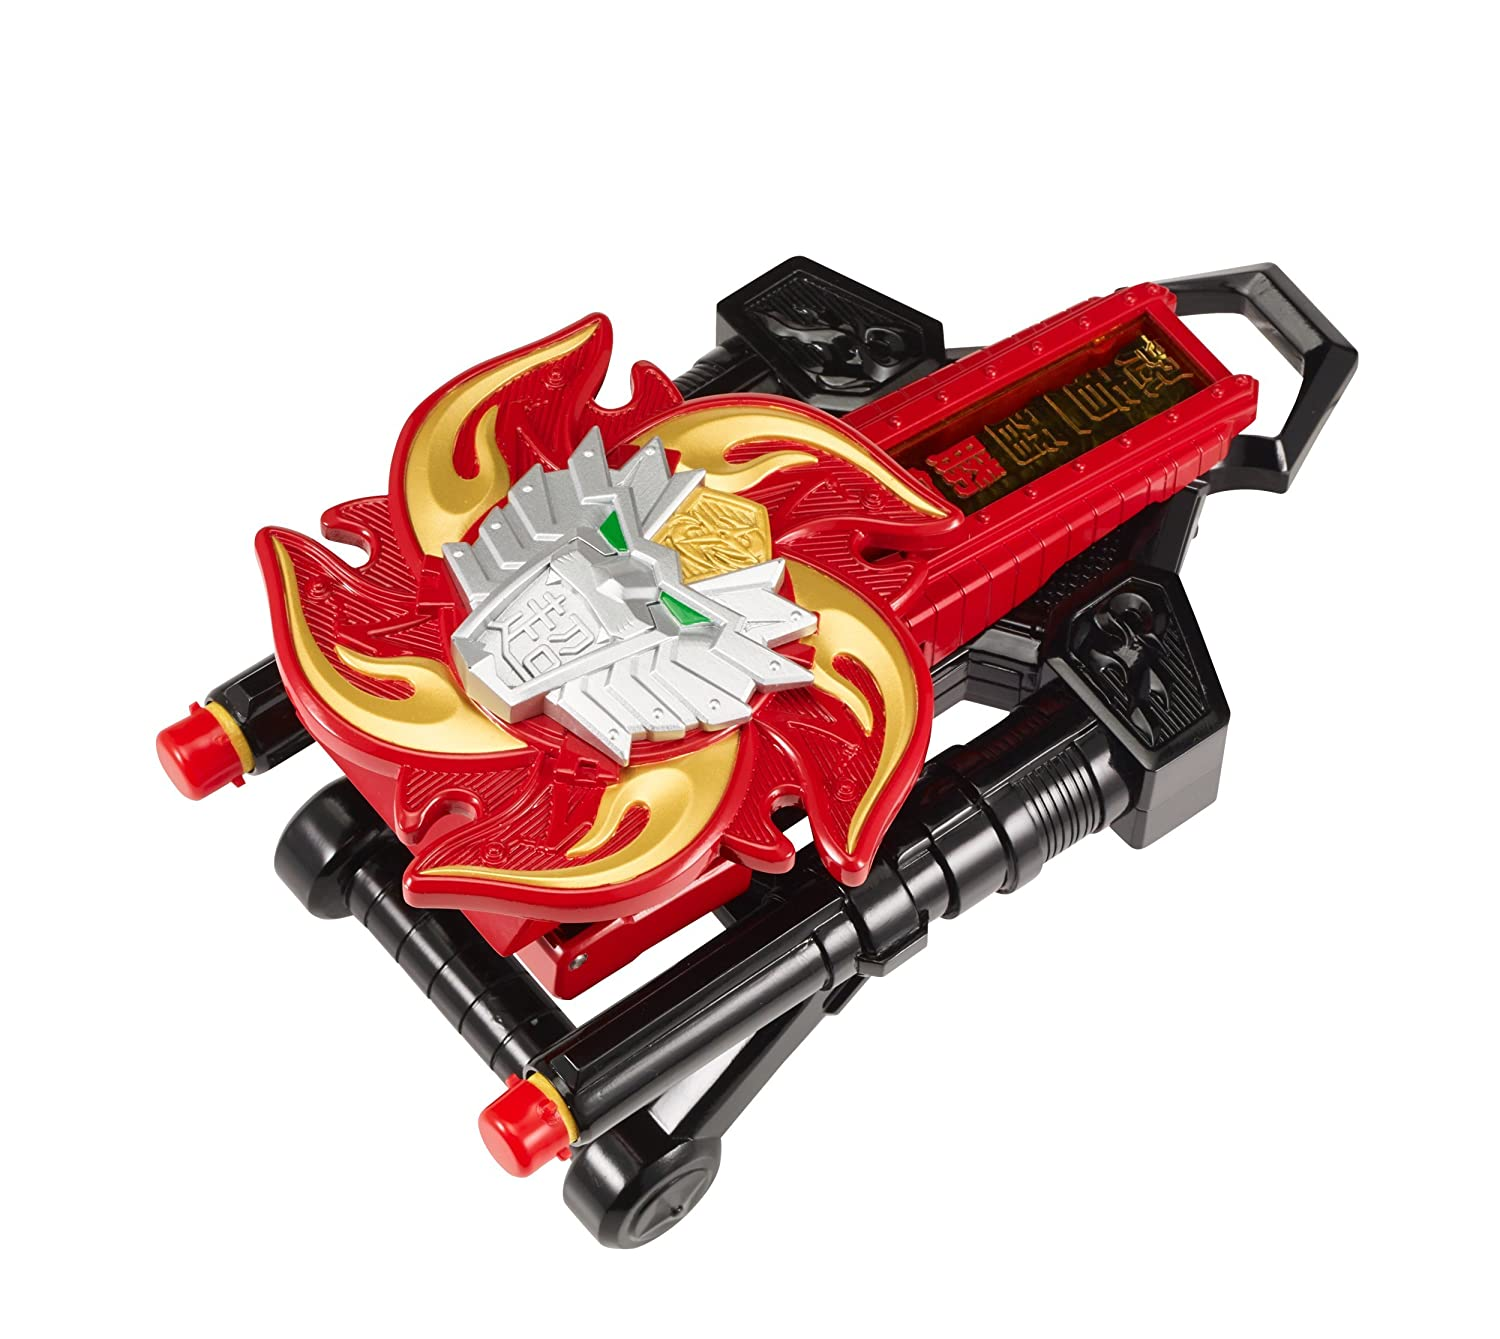 Power Rangers Super Ninja Steel Lion Fire Battle Morpher Dx, Lion Fire Morpher by Power Rangers